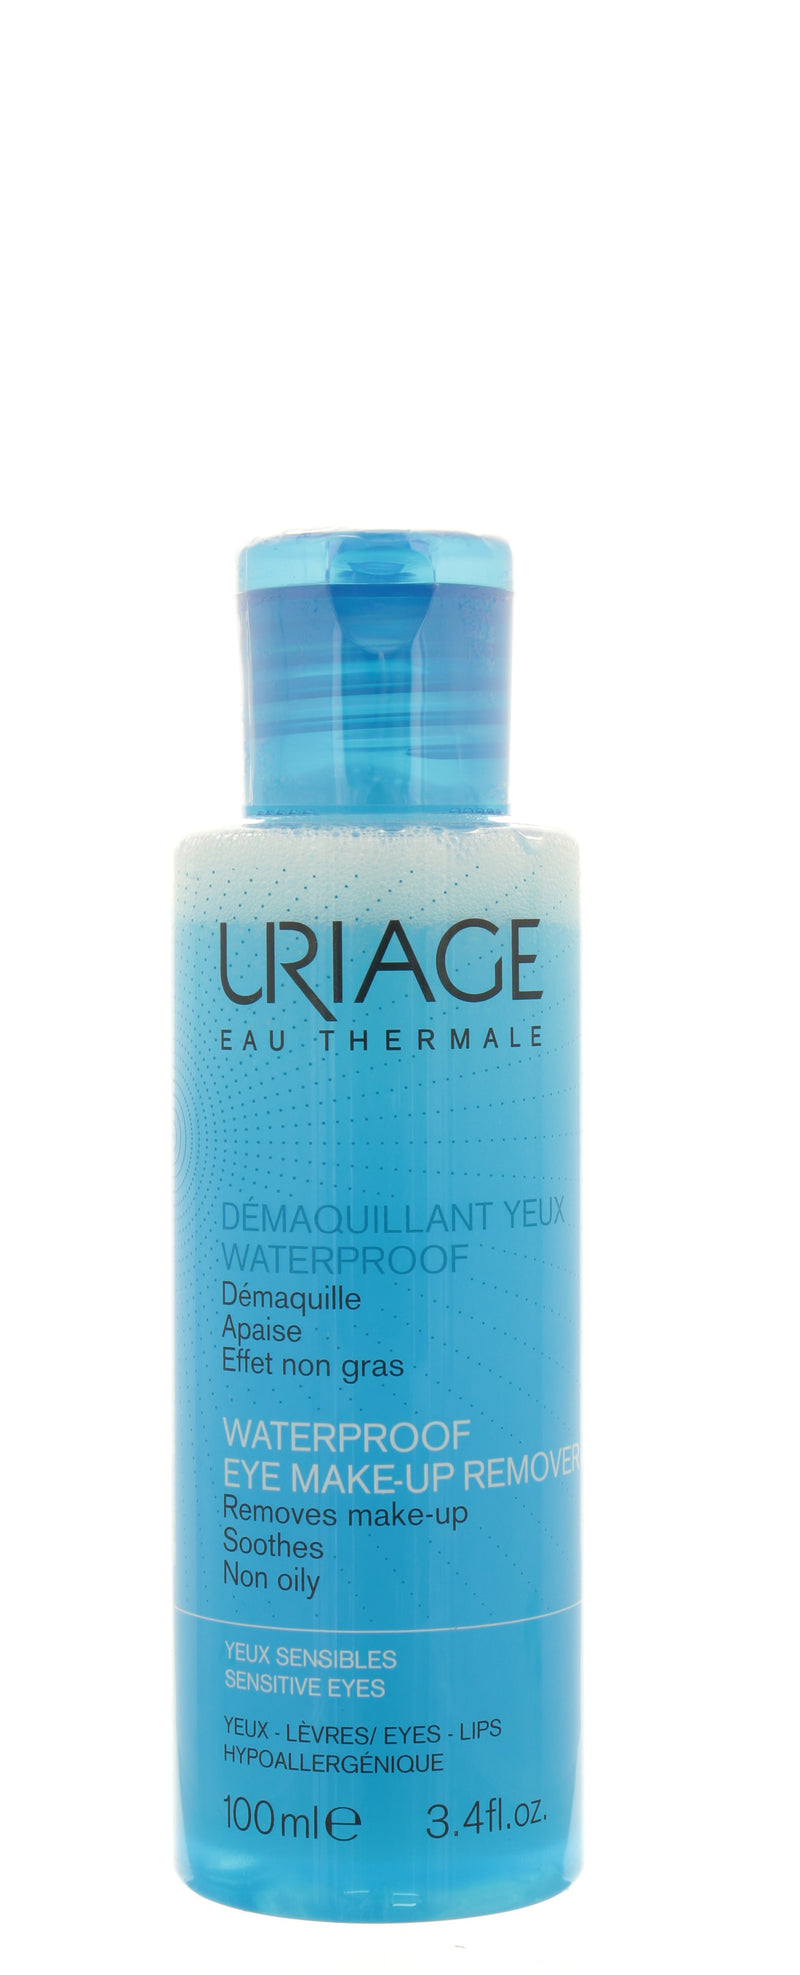 URIAGE Waterproof Eye Make-Up Remover